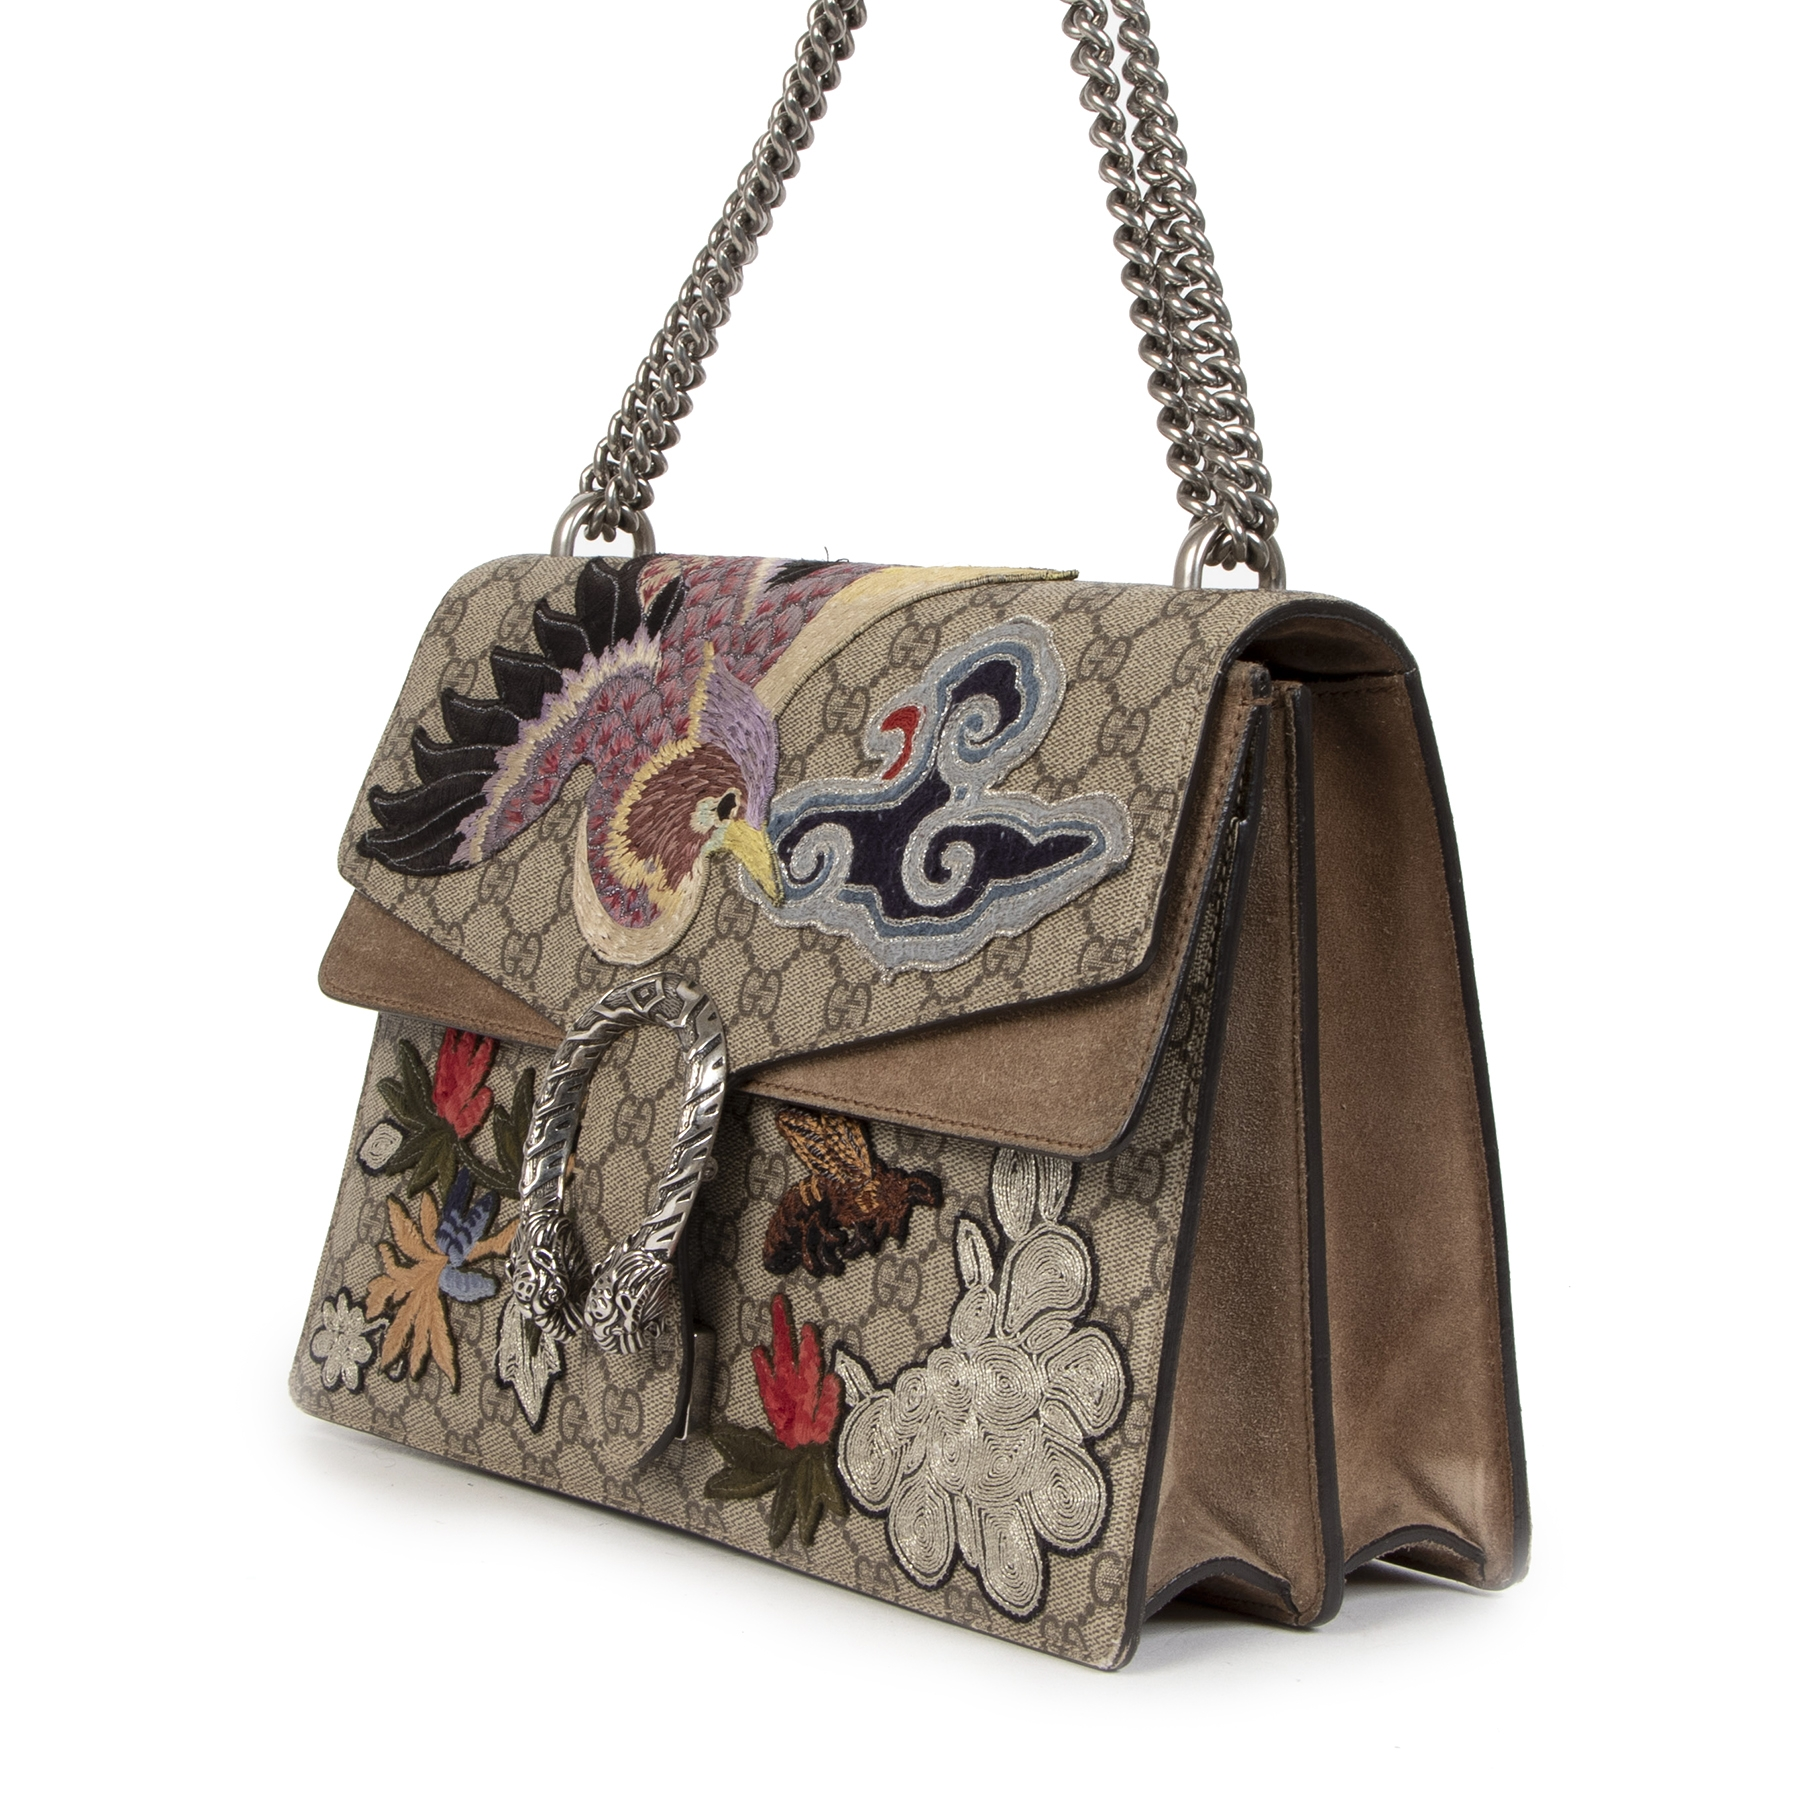 Koop en verkoop uw authentieke Gucci Medium Dionysus Bird Embroidered Shoulder Bag